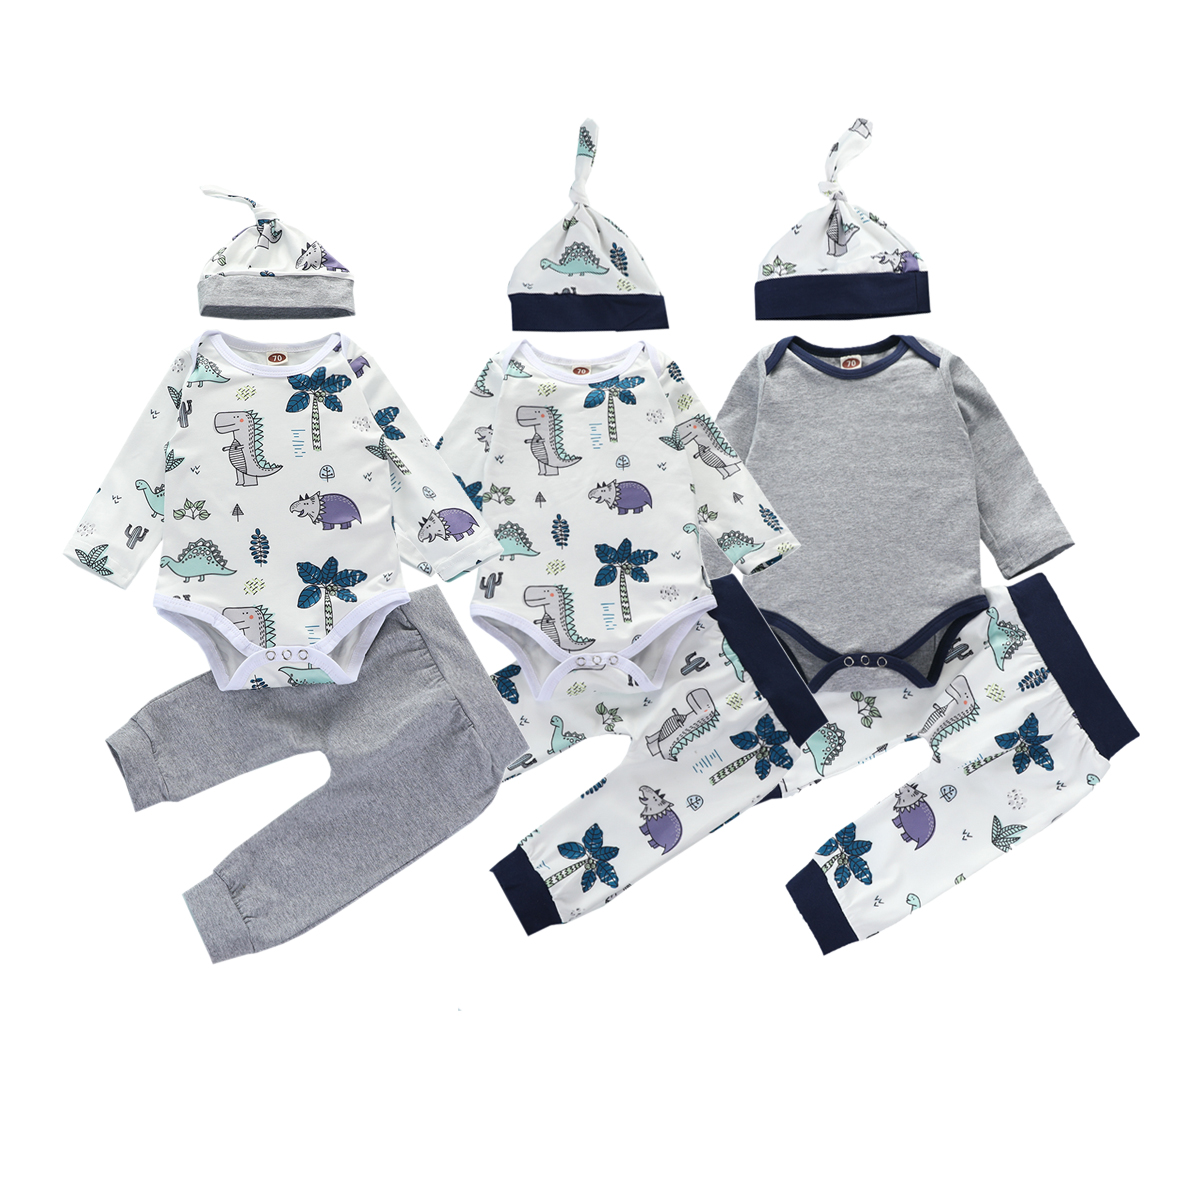 3Pcs Toddler Autumn Spring Suit Round-Collar Long-Sleeves Rompers Top Casual Pants Hat Cartoon Dinosaur Outfit for Baby Boy Girl